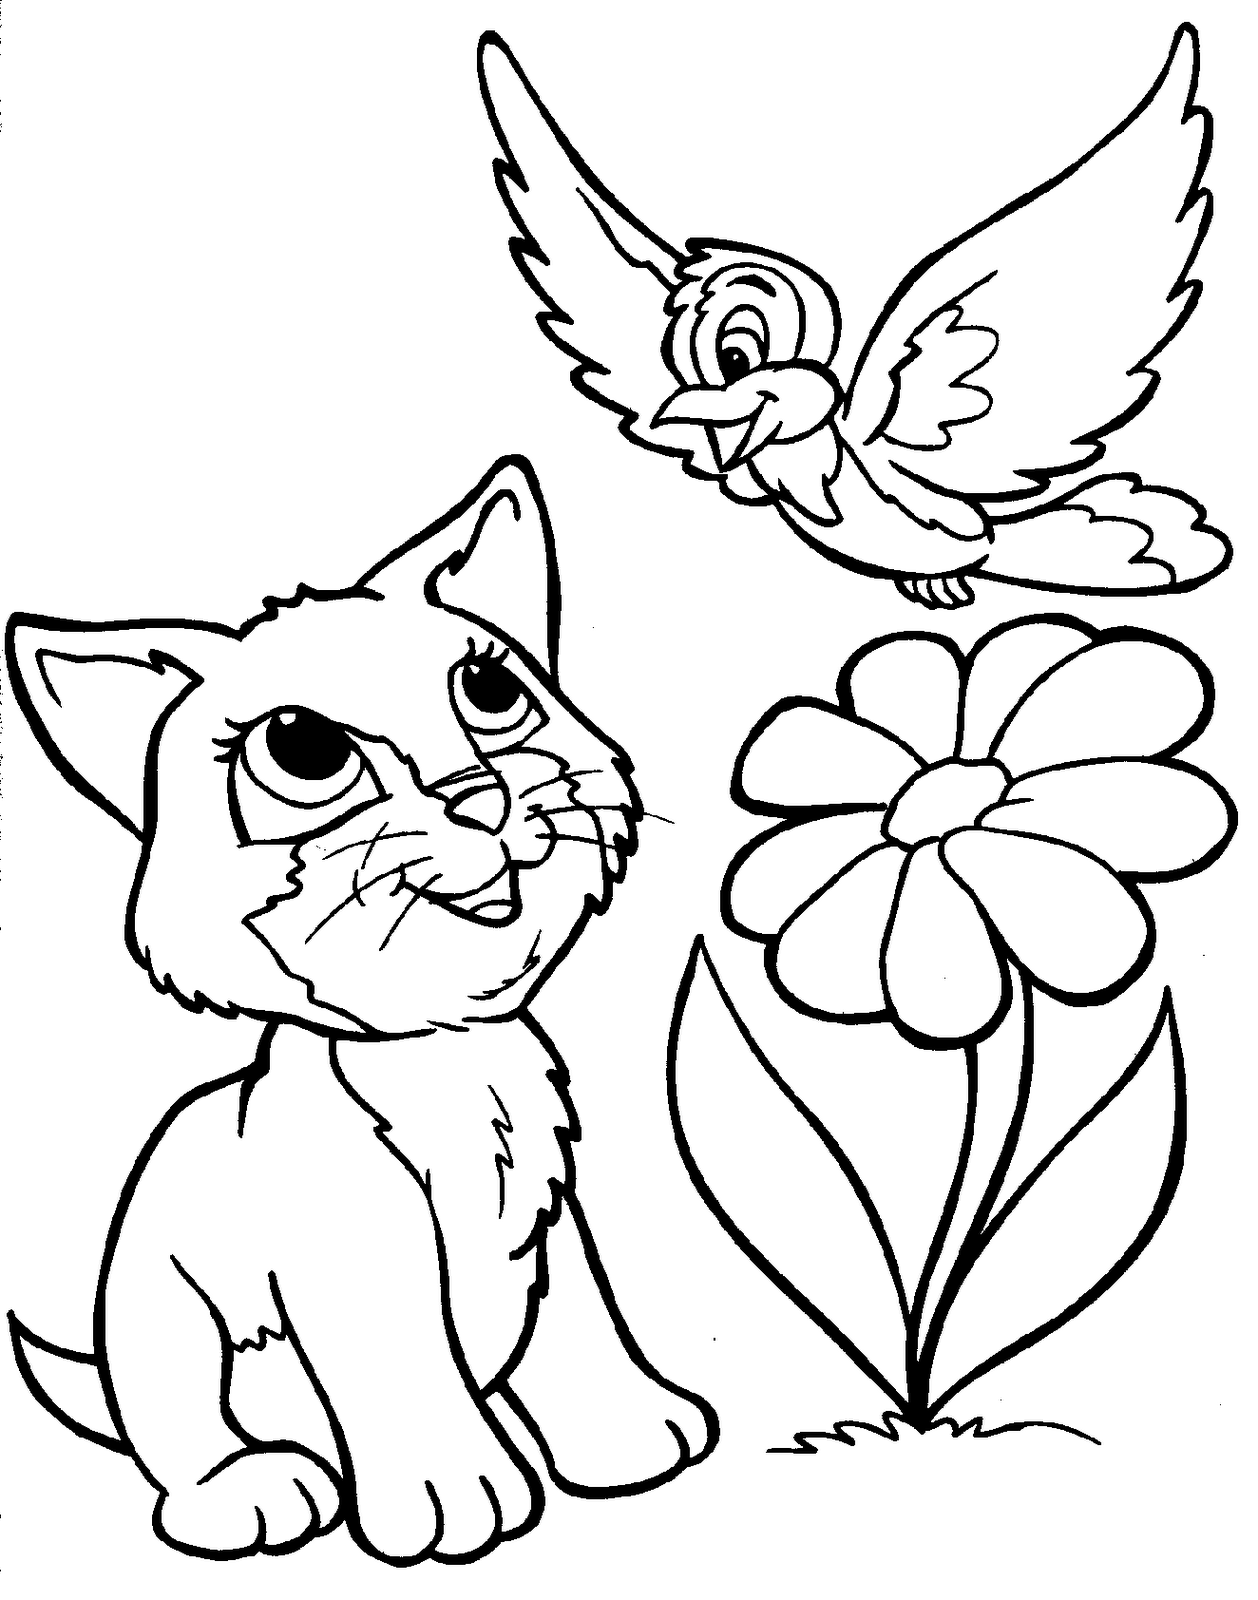 coloring templates animals animal coloring pages for adults best coloring pages for templates animals coloring